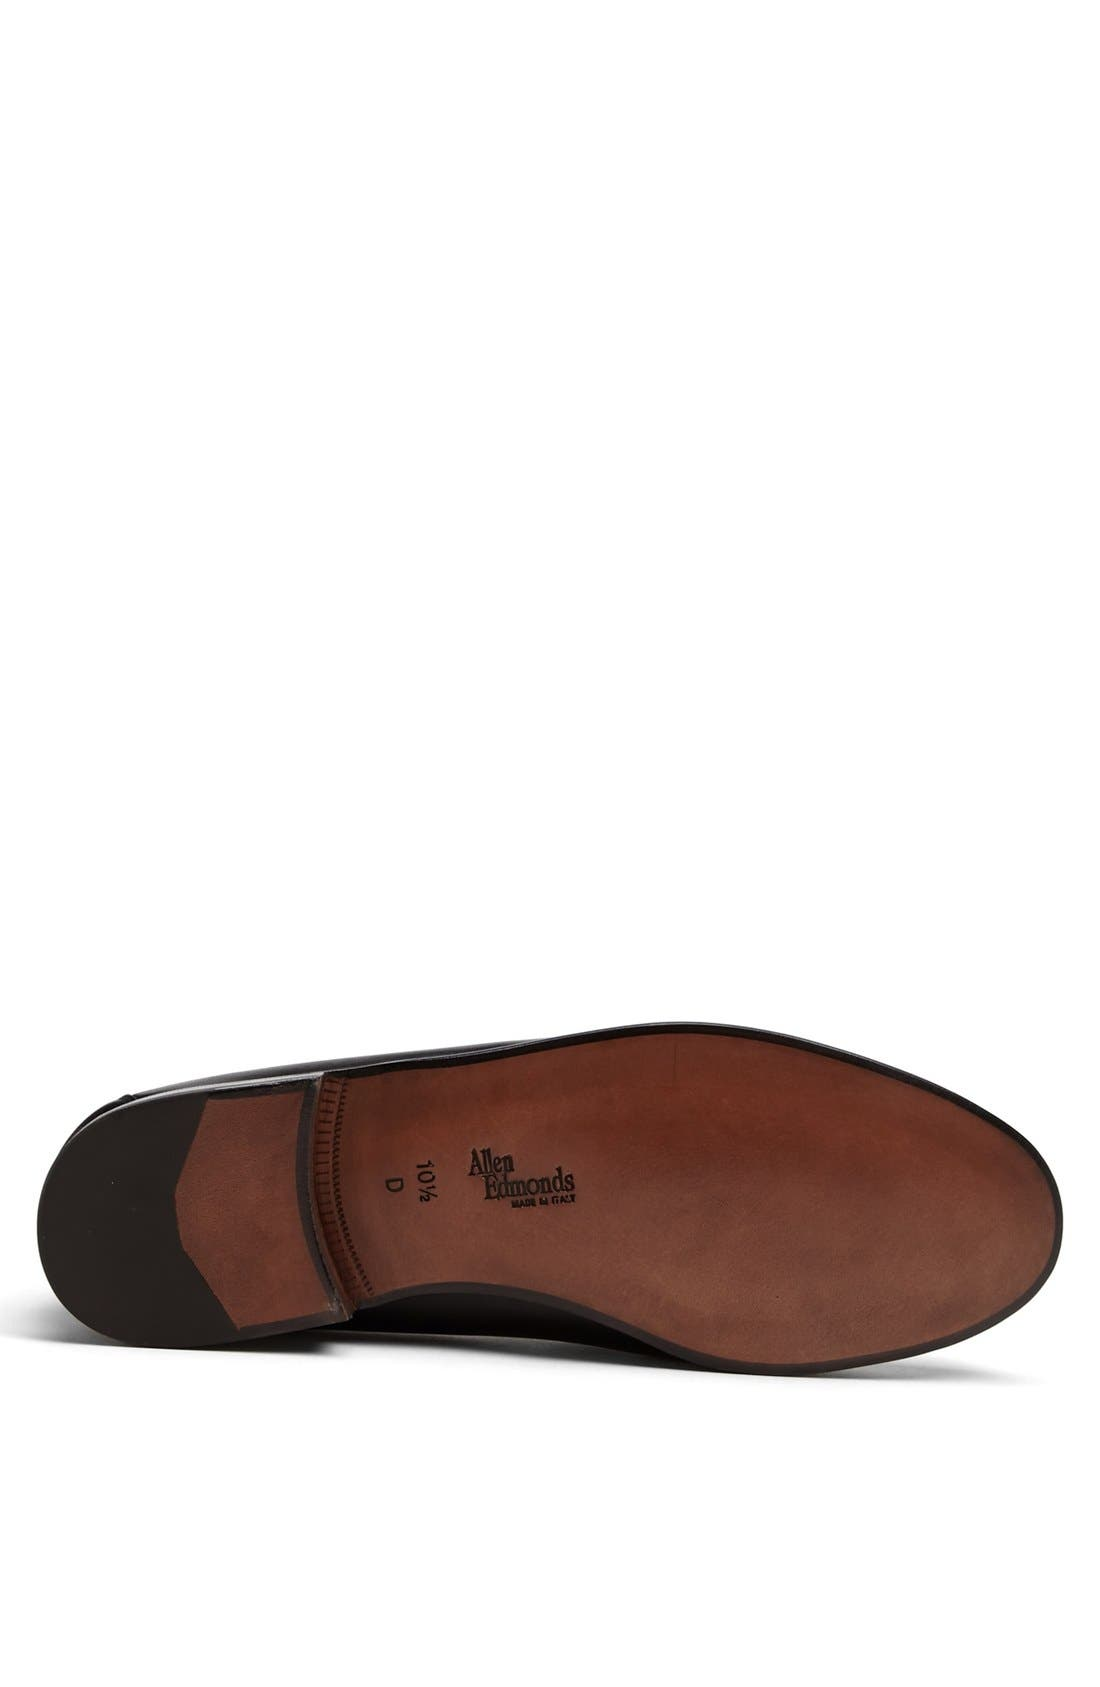 'Urbino' Tassel Loafer,                             Alternate thumbnail 4, color,                             Black